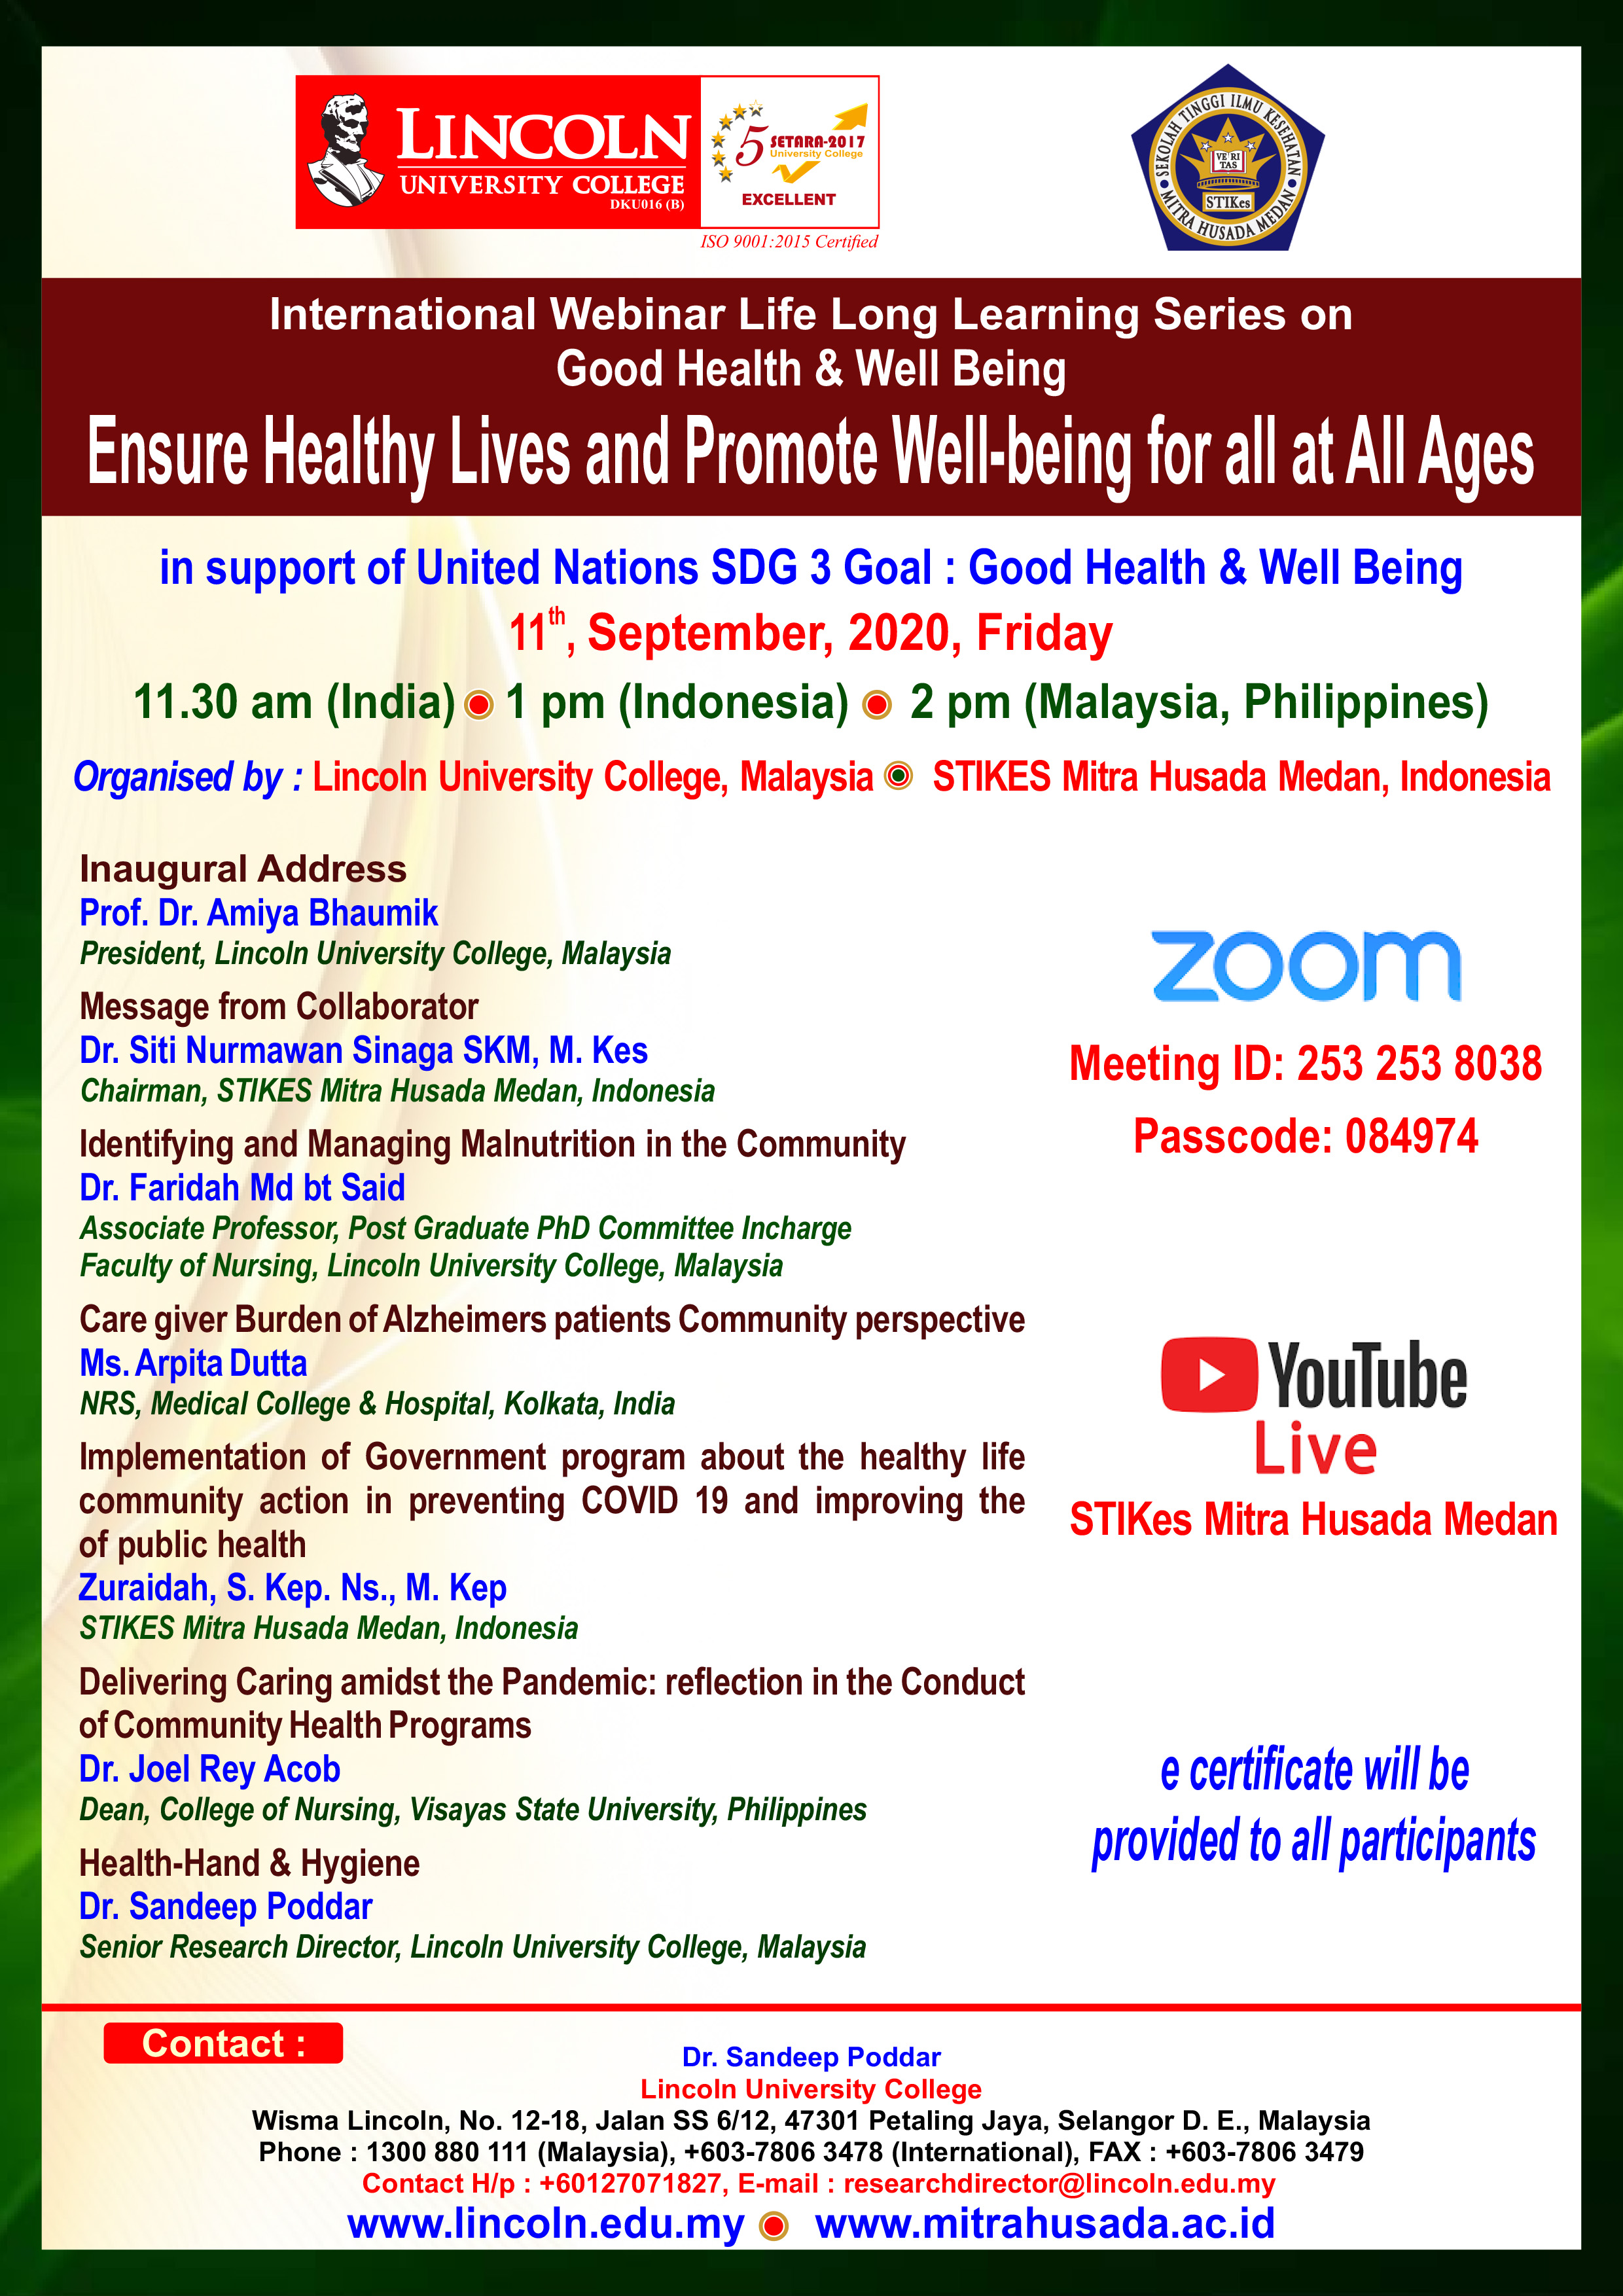 [LIVE] International Webinar Life Long Learning Series on Good Health & Well Being